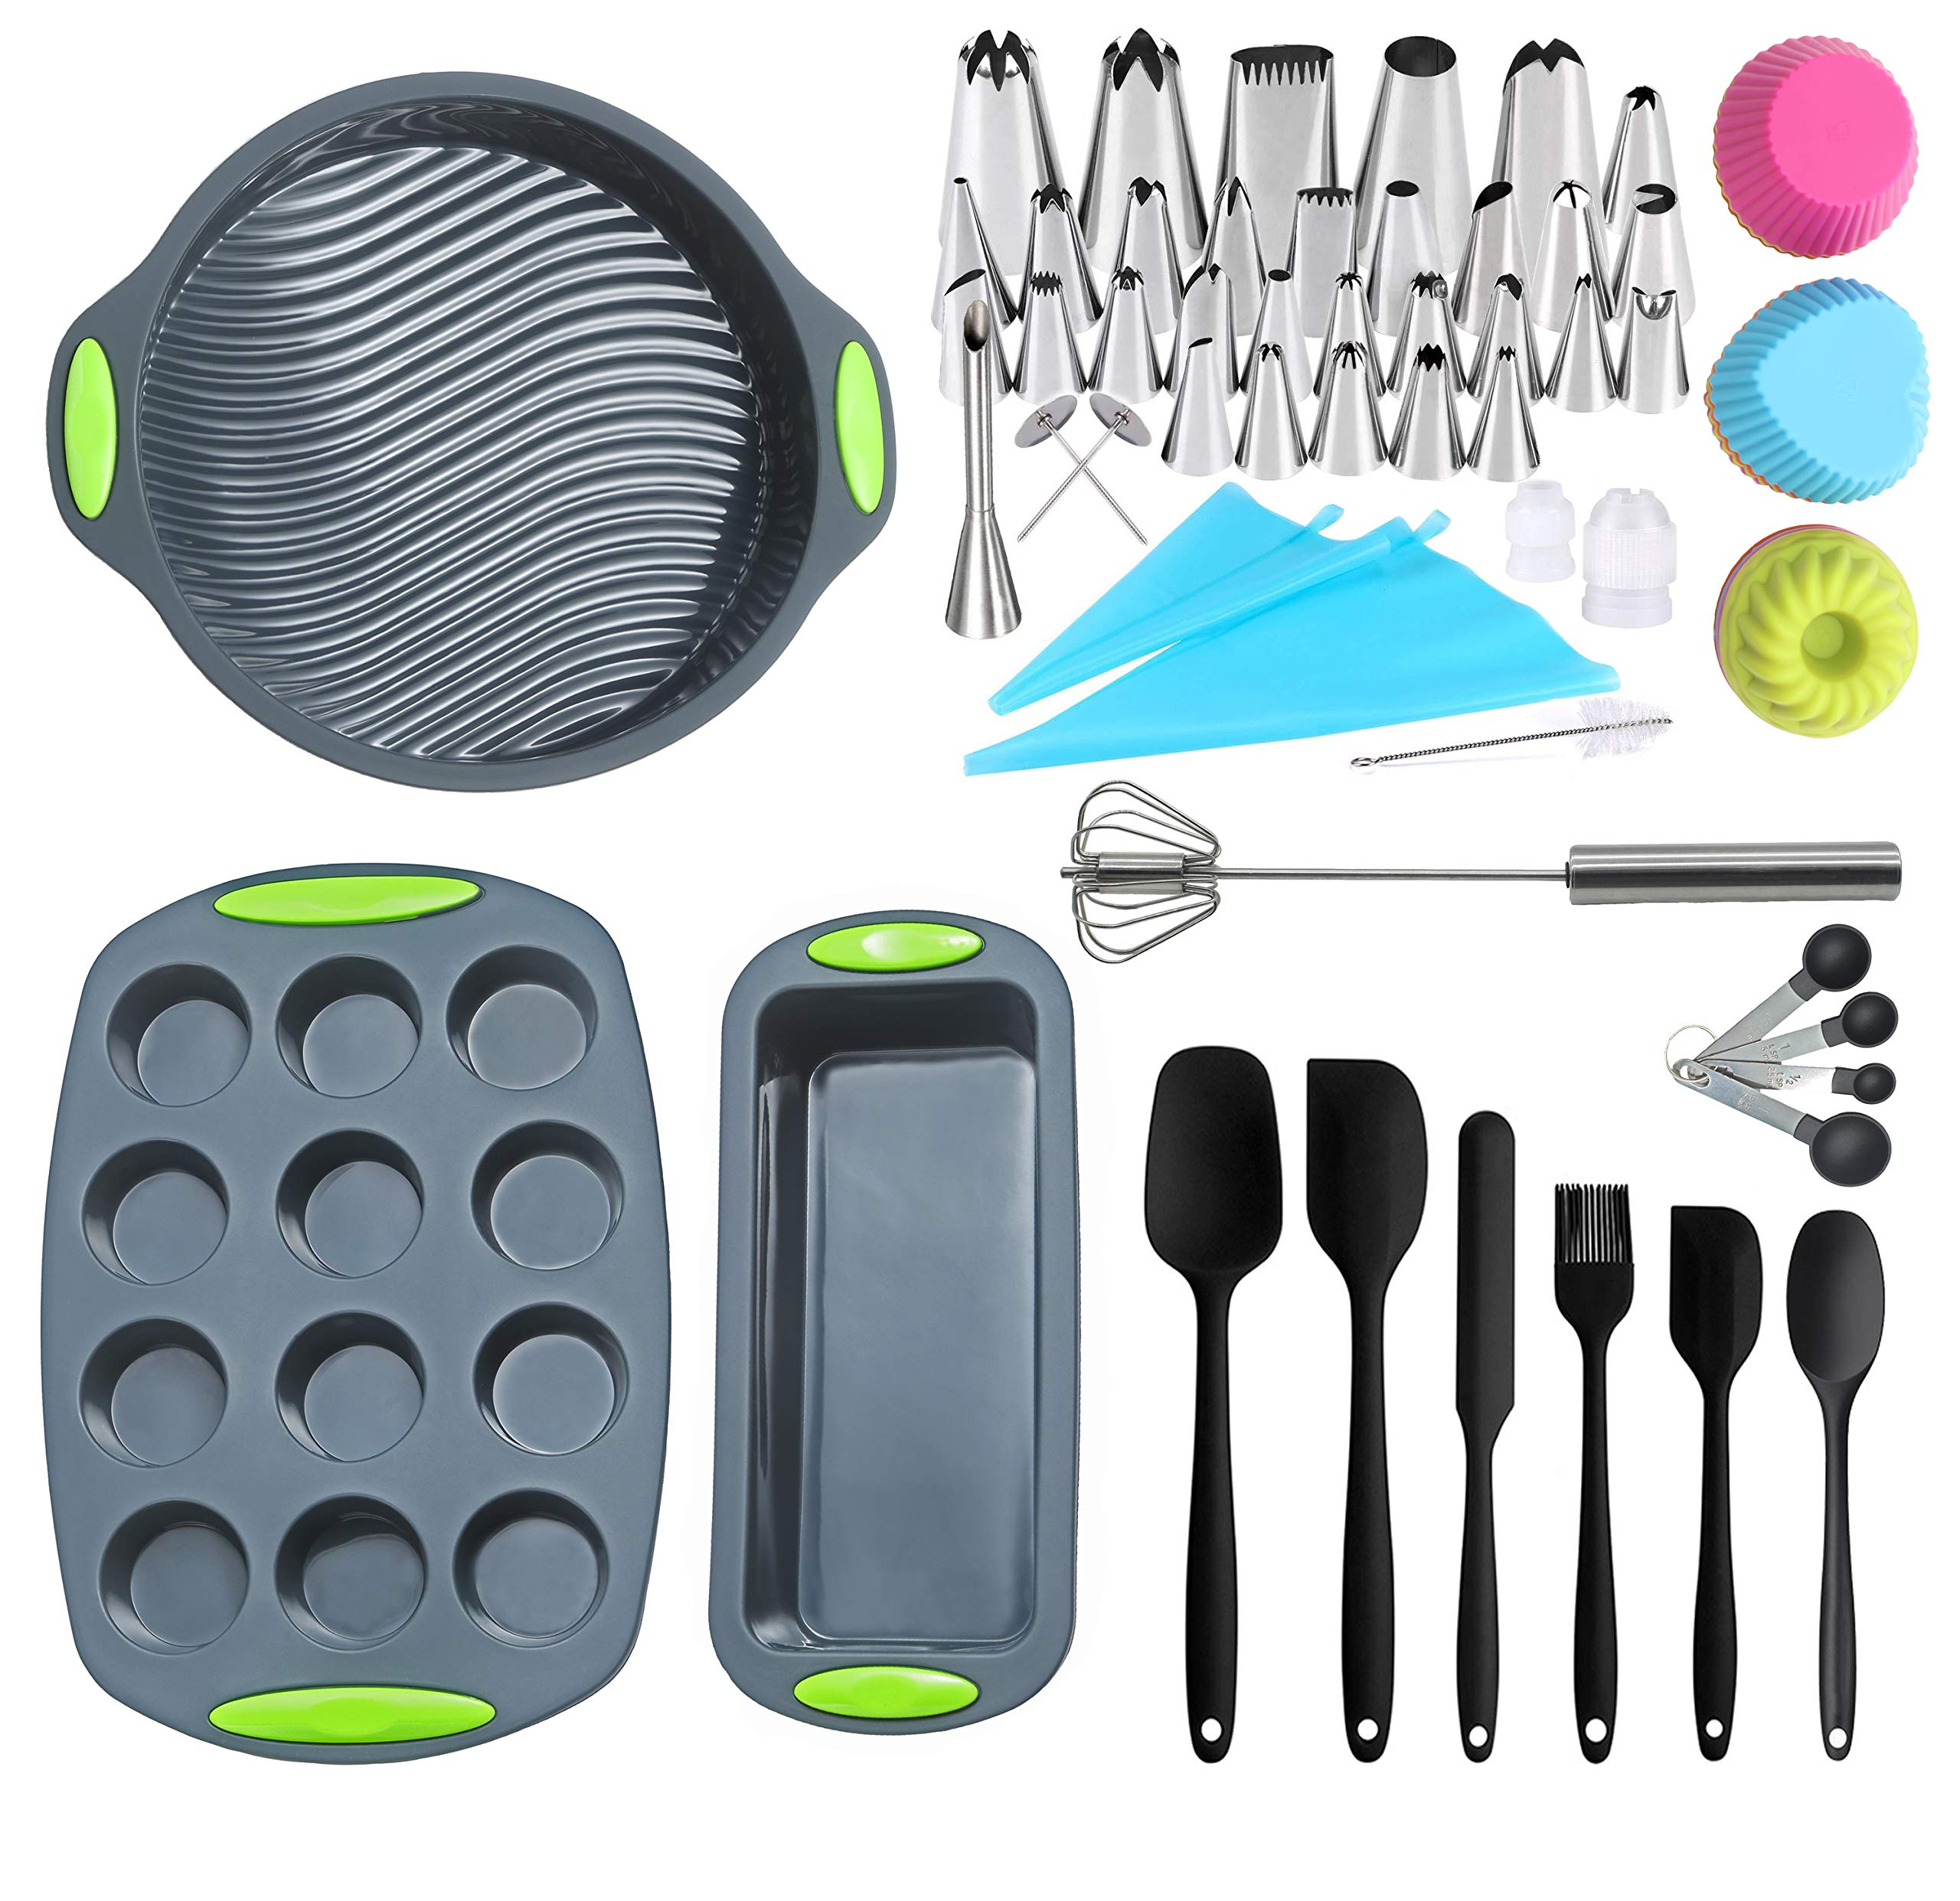 62 Pieces Bakeware Set | Food Grade FDA-Approved Silicone Molds | Round Cake Pan, Loaf Bread Pan, Muffin Pan, Spatula Set, Hand Mixer, Cupcake Mold, Piping Bags and Tips Kit Cake Decorating Supplies